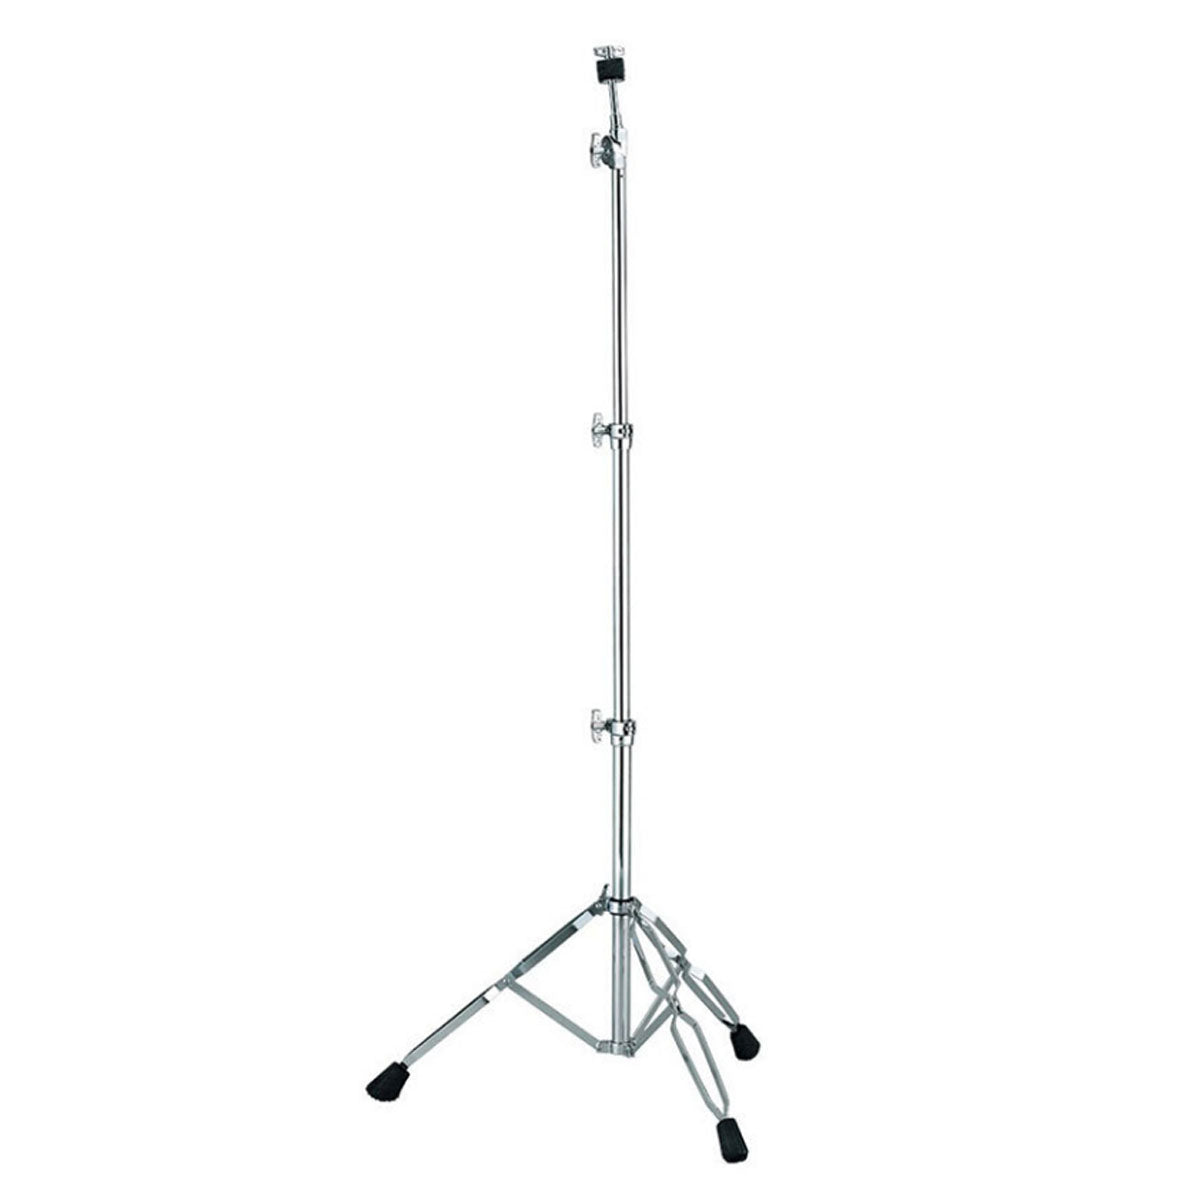 Dixon 9280 Series Straight Cymbal Stand Medium-Weight Double Braced - PSY9280